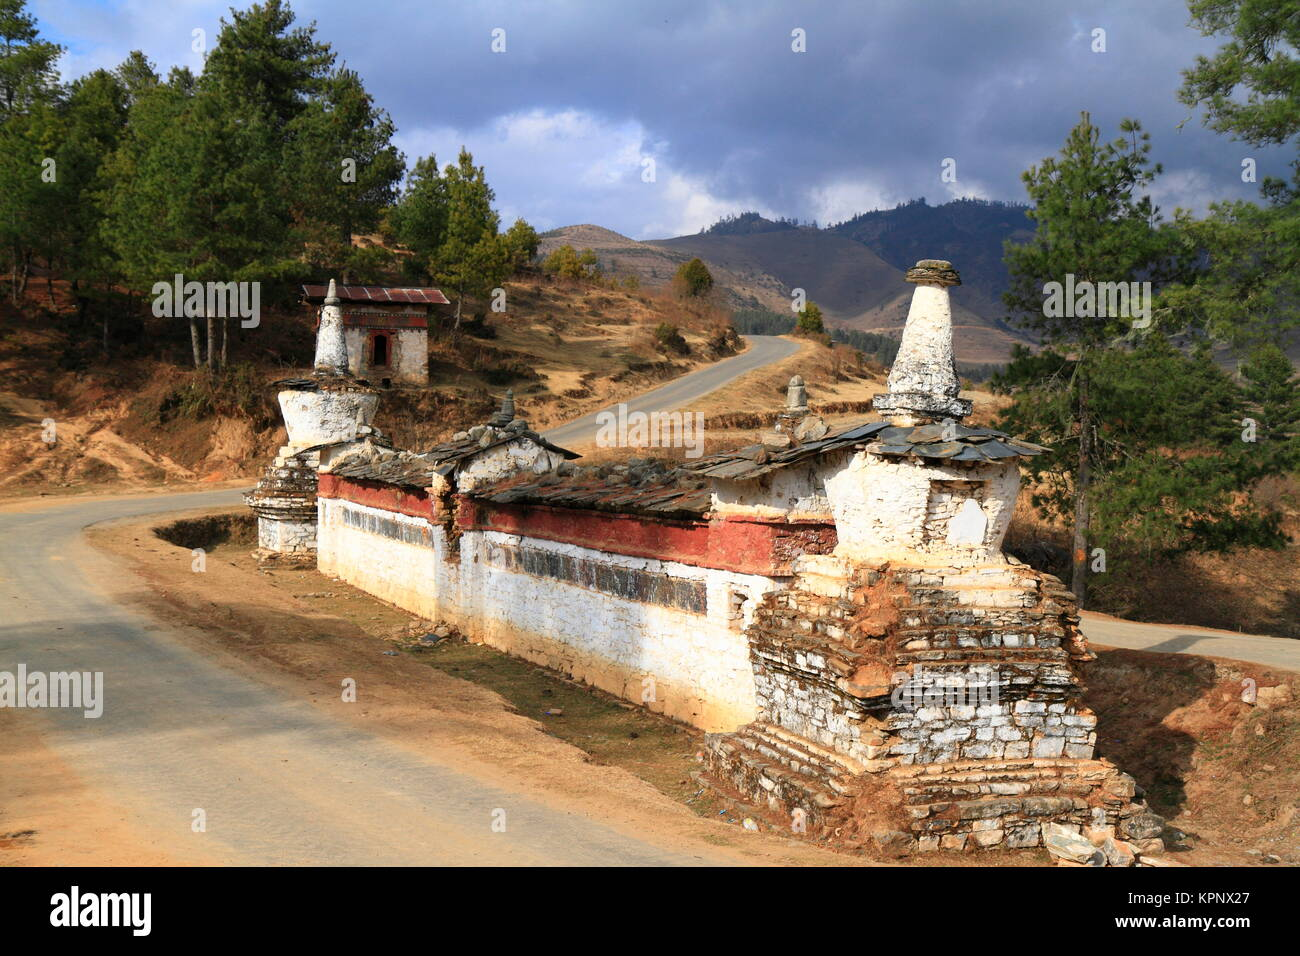 buddhist wall on the road in wangdue phodrang valley,bhutan - Stock Image